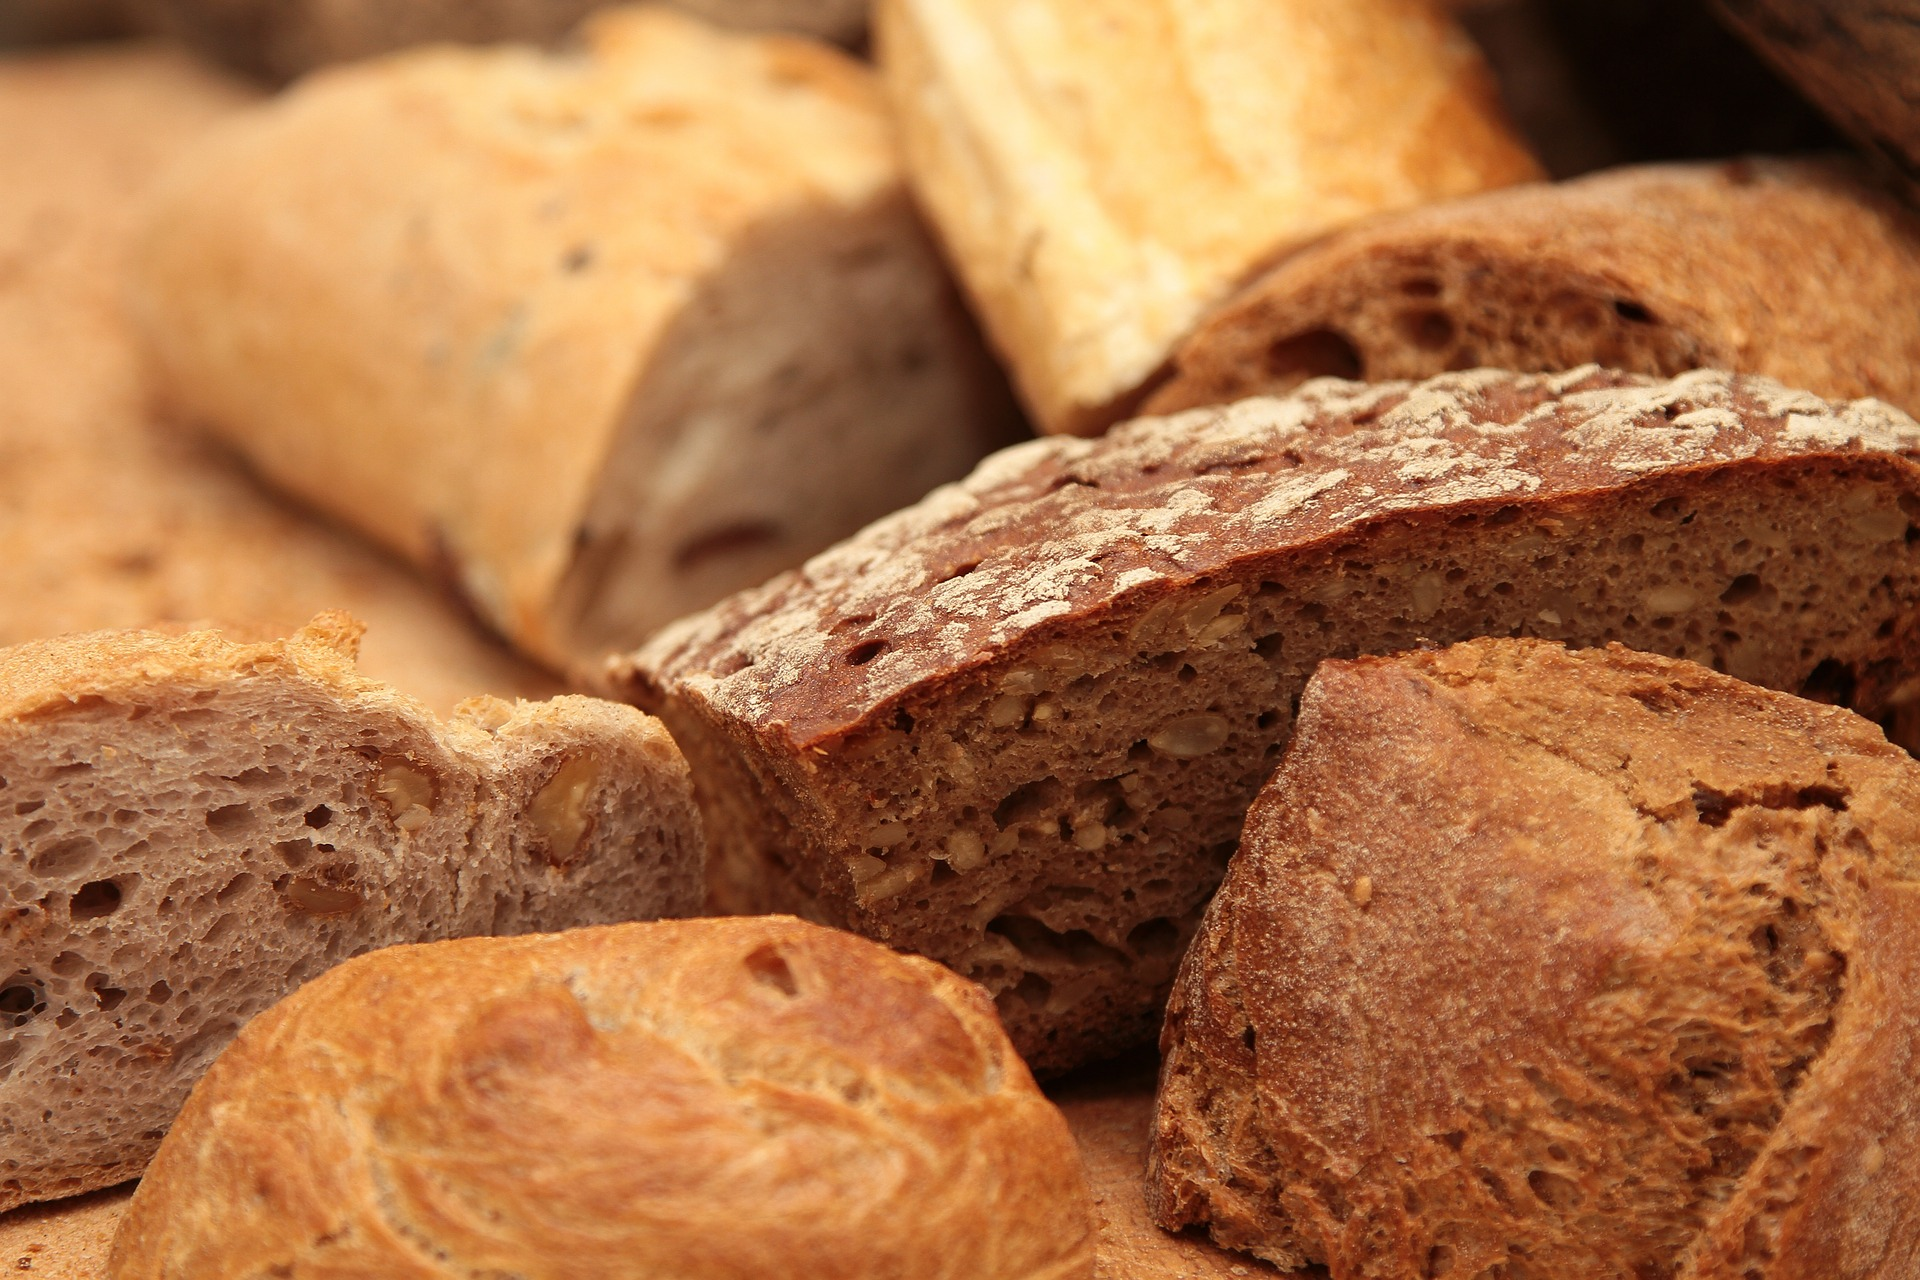 Pieces of loaves of bread